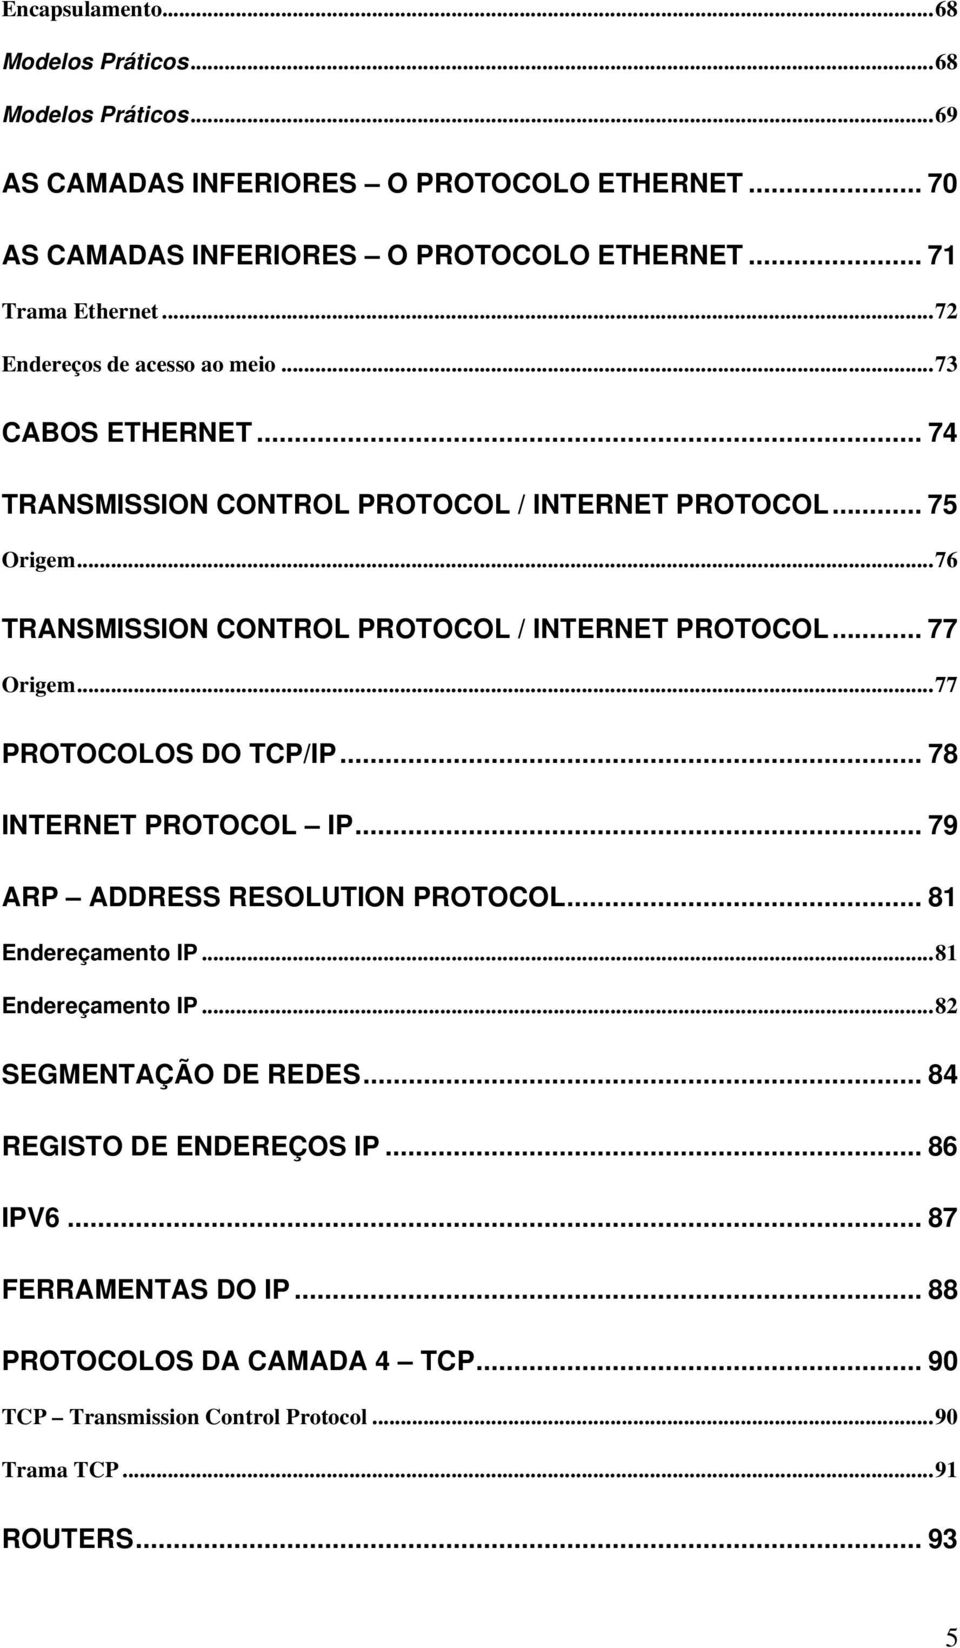 .. 77 Origem...77 PROTOCOLOS DO TCP/IP... 78 INTERNET PROTOCOL IP... 79 ARP ADDRESS RESOLUTION PROTOCOL... 81 Endereçamento IP...81 Endereçamento IP...82 SEGMENTAÇÃO DE REDES.